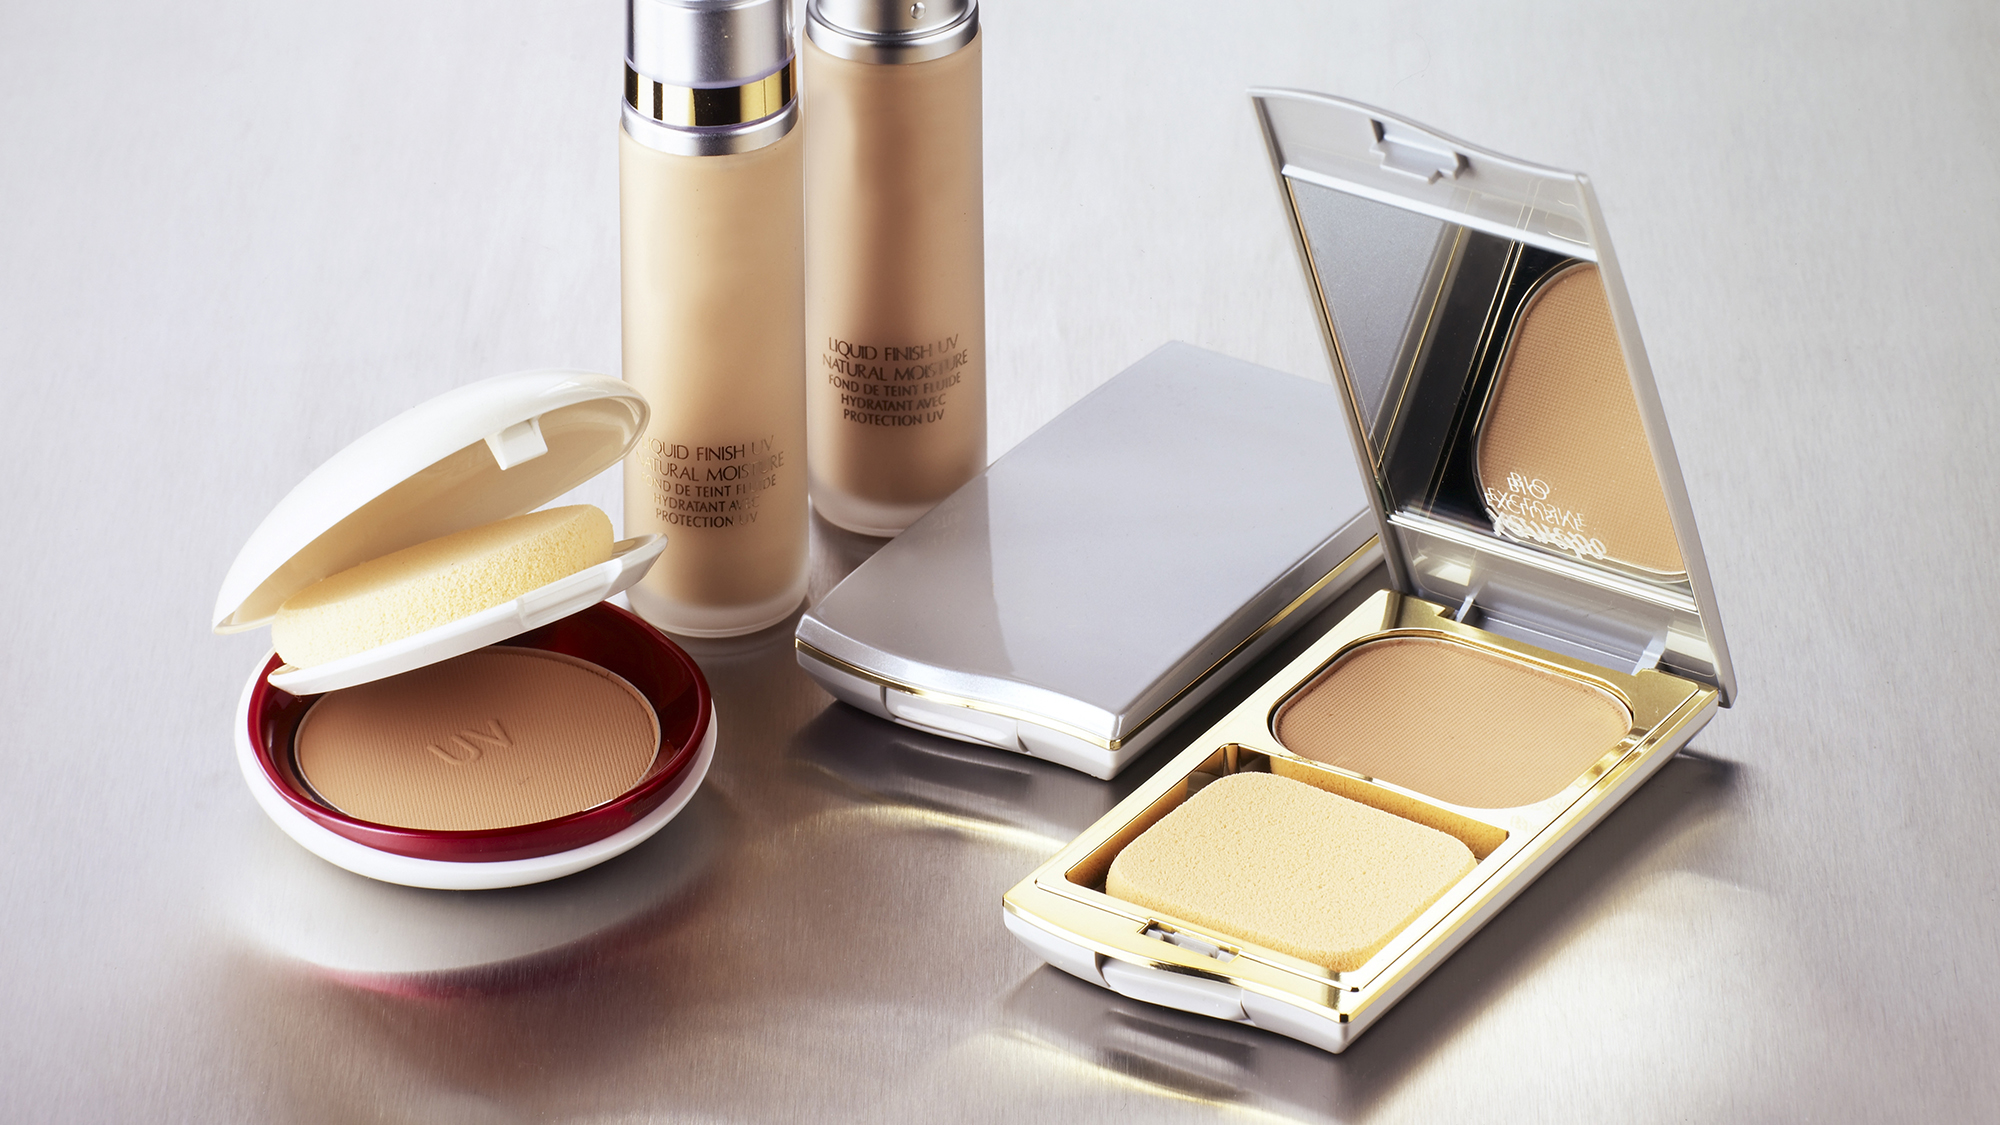 Mineral make-up: 13 of the best mineral foundations